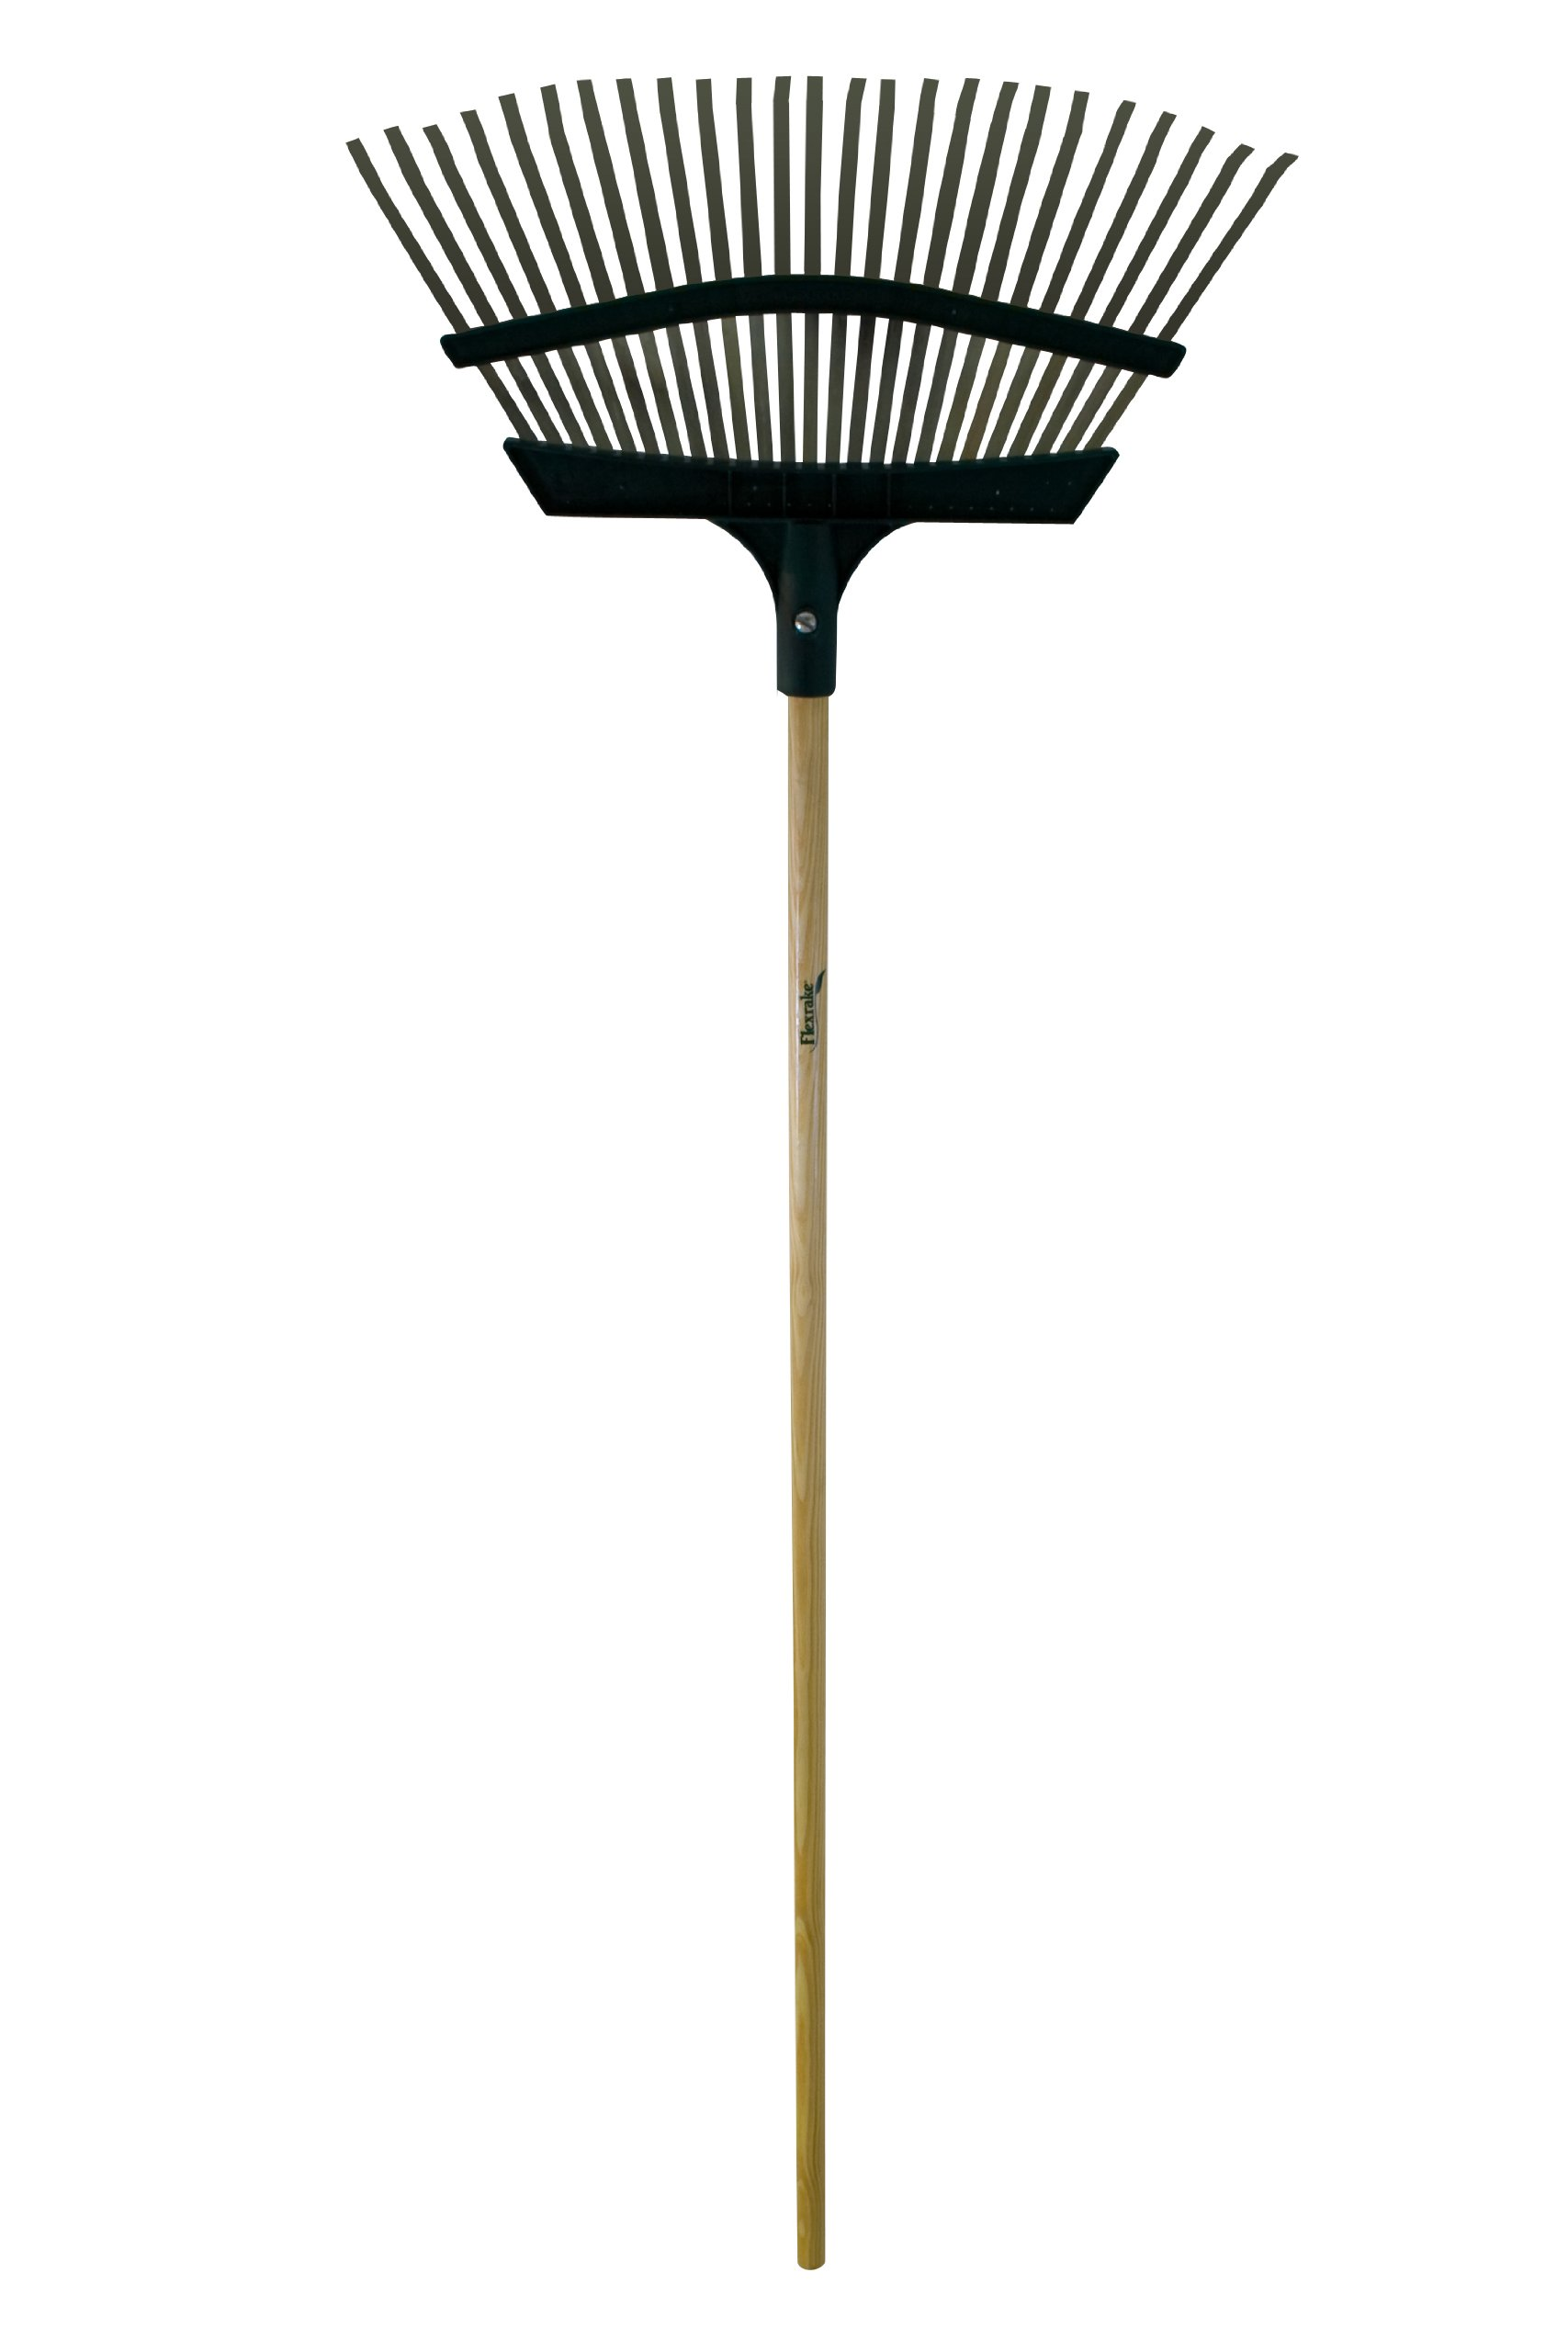 Flexrake 9A Lawn Rake 20-Inch Metal/Poly with 48-Inch Aluminum Handle